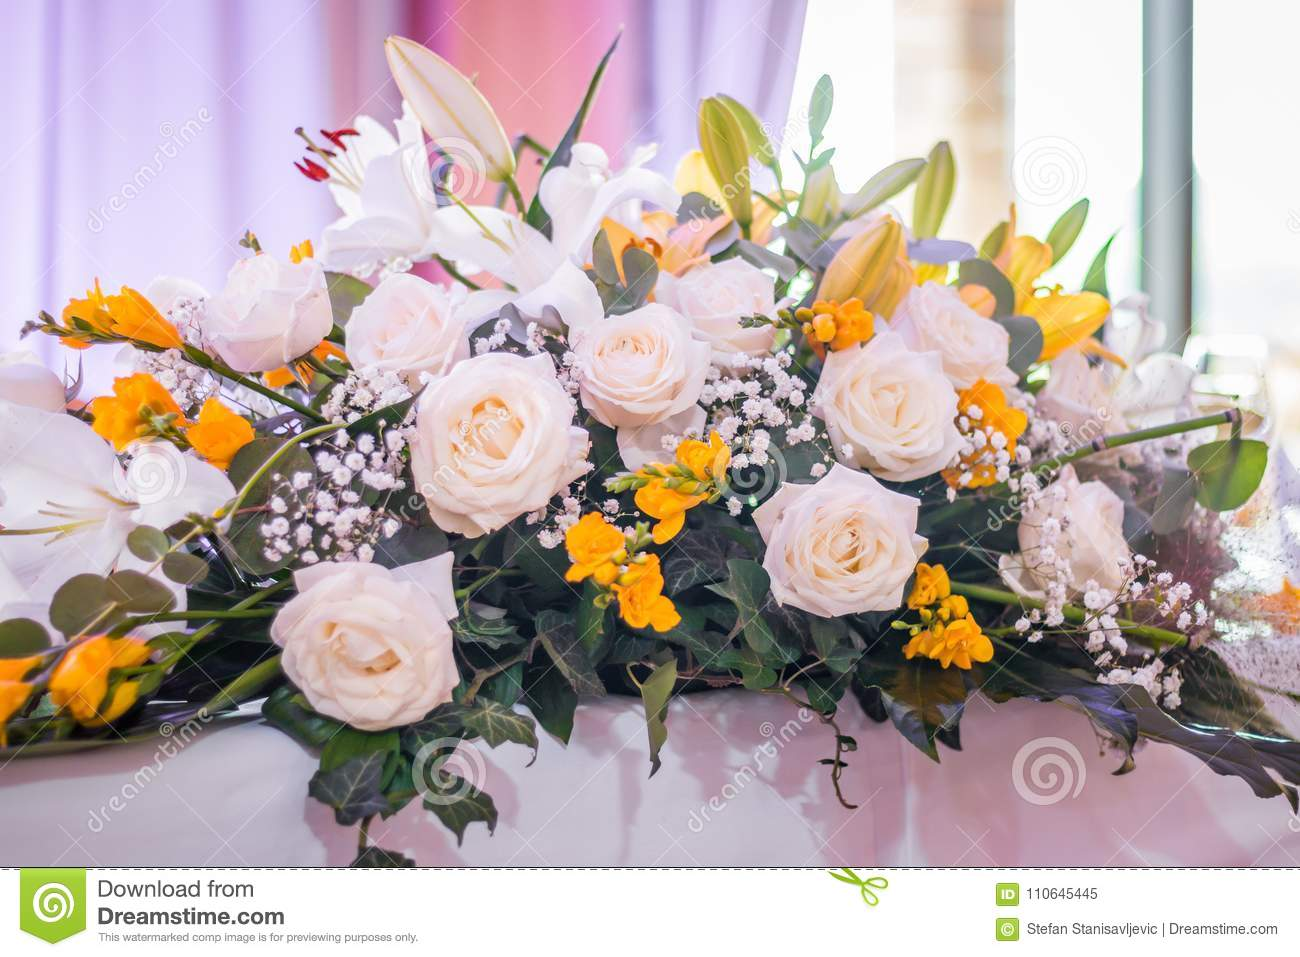 Wedding Table Flowers Stock Image Image Of Decor Party 110645445